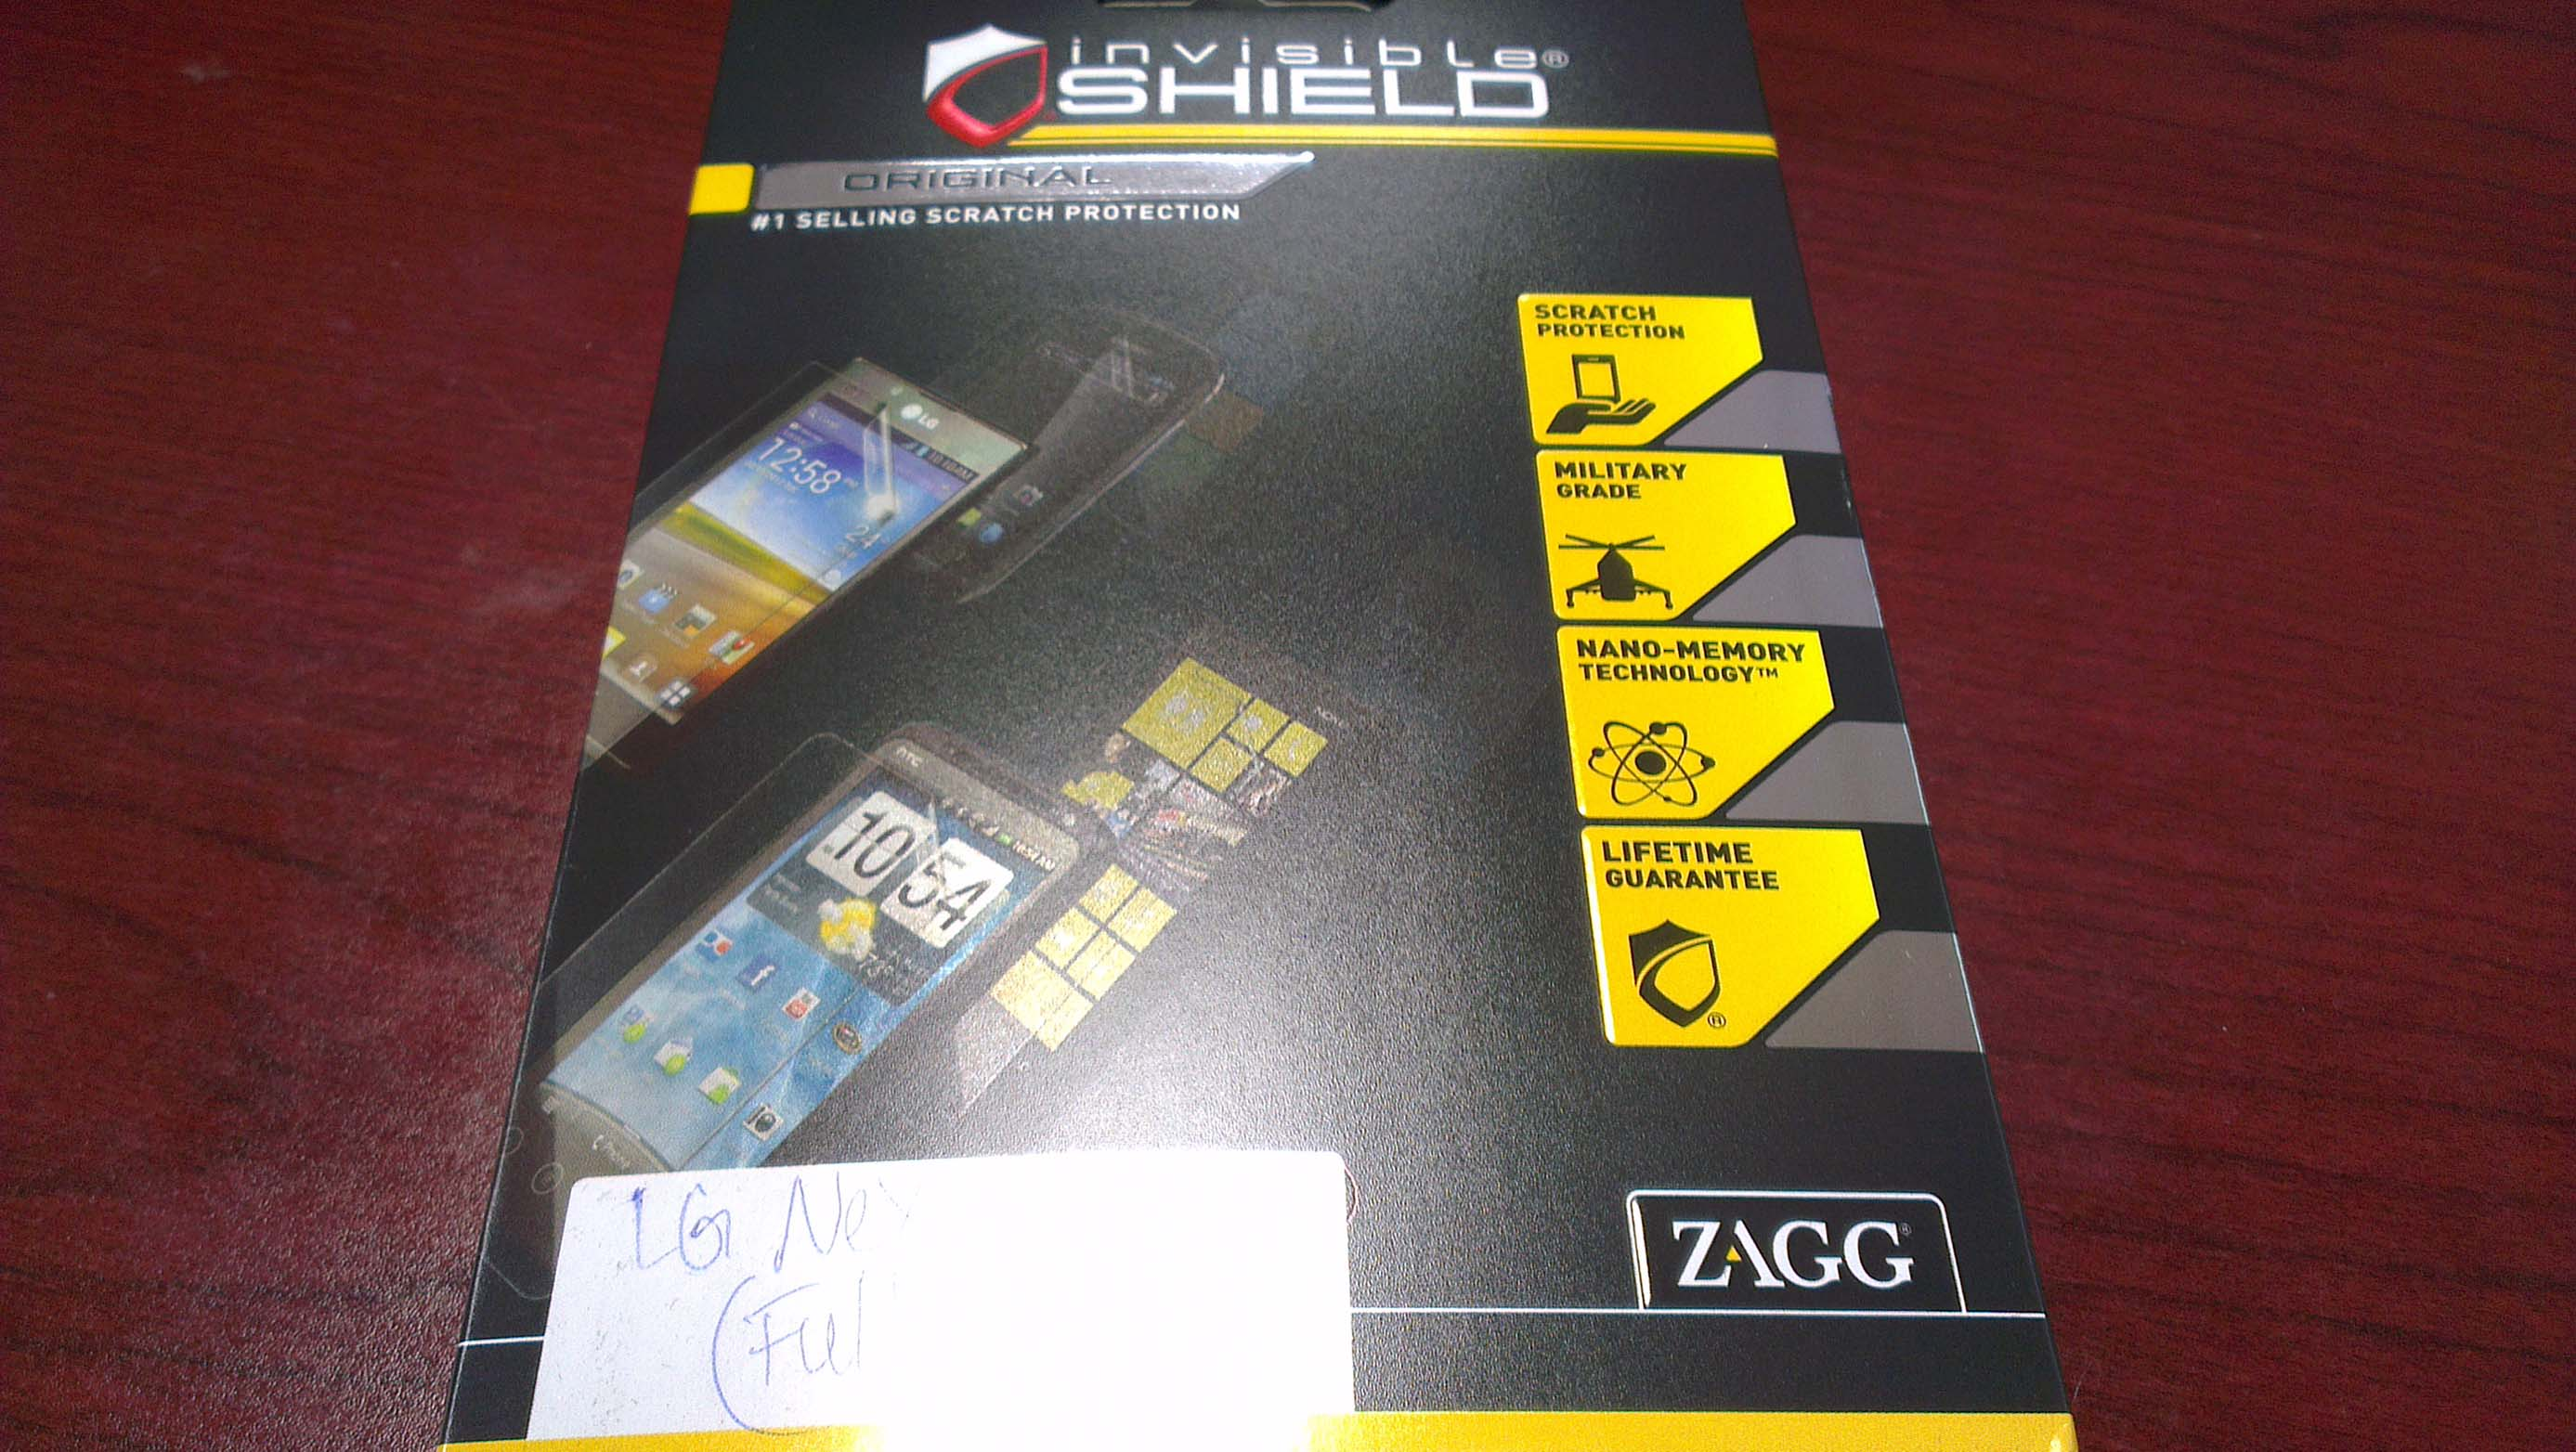 Review: ZAGG invisibleSHIELD Nexus 4 Full Body